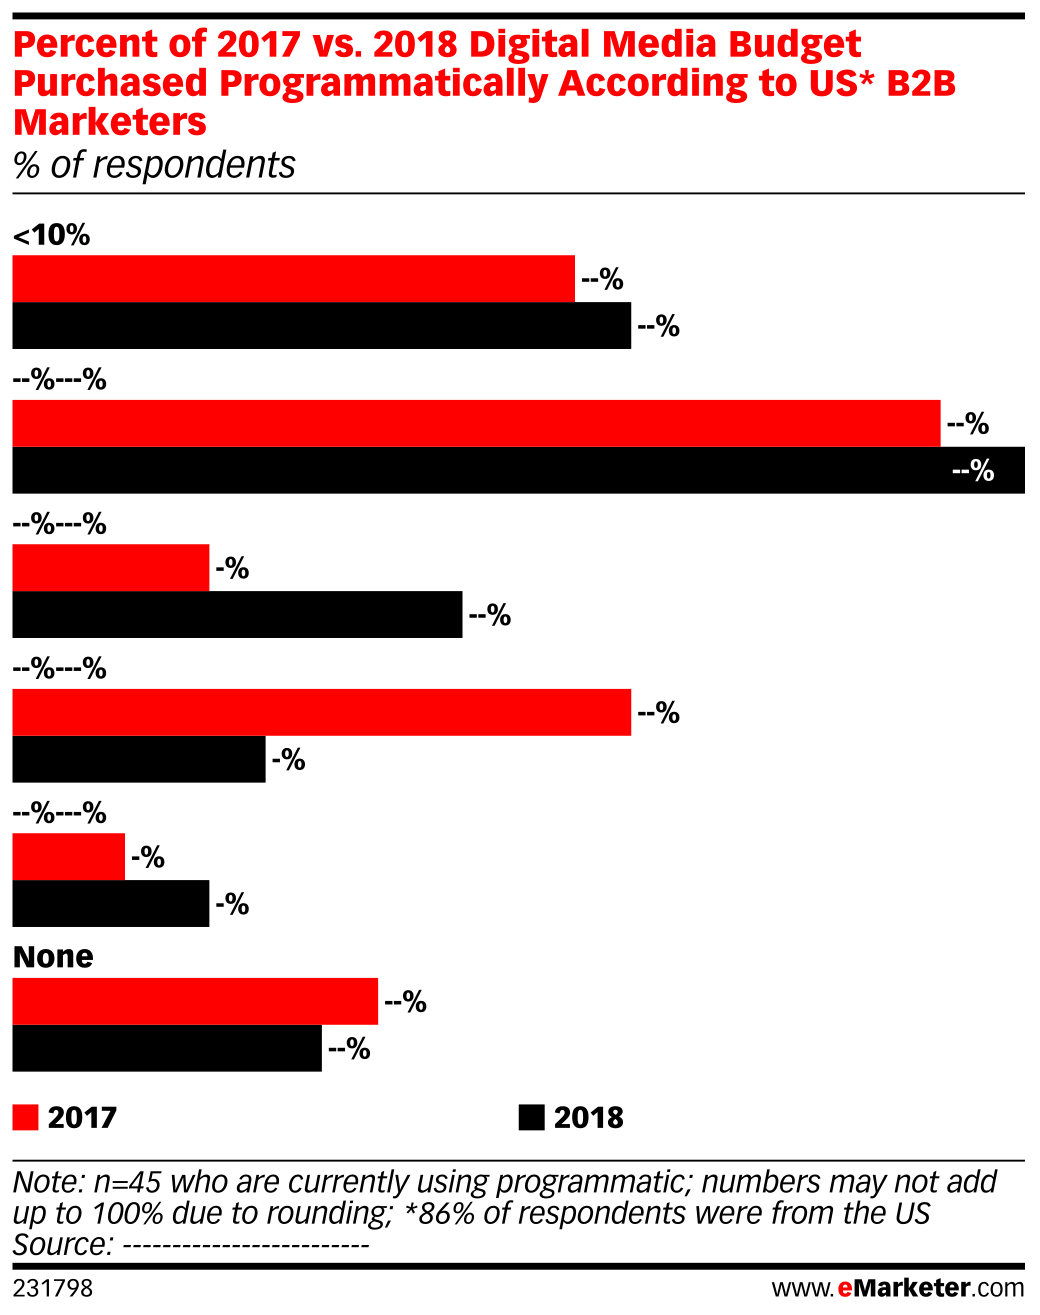 Percent of 2017 vs. 2018 Digital Media Budget Purchased Programmatically According to US* B2B Marketers (% of respondents)